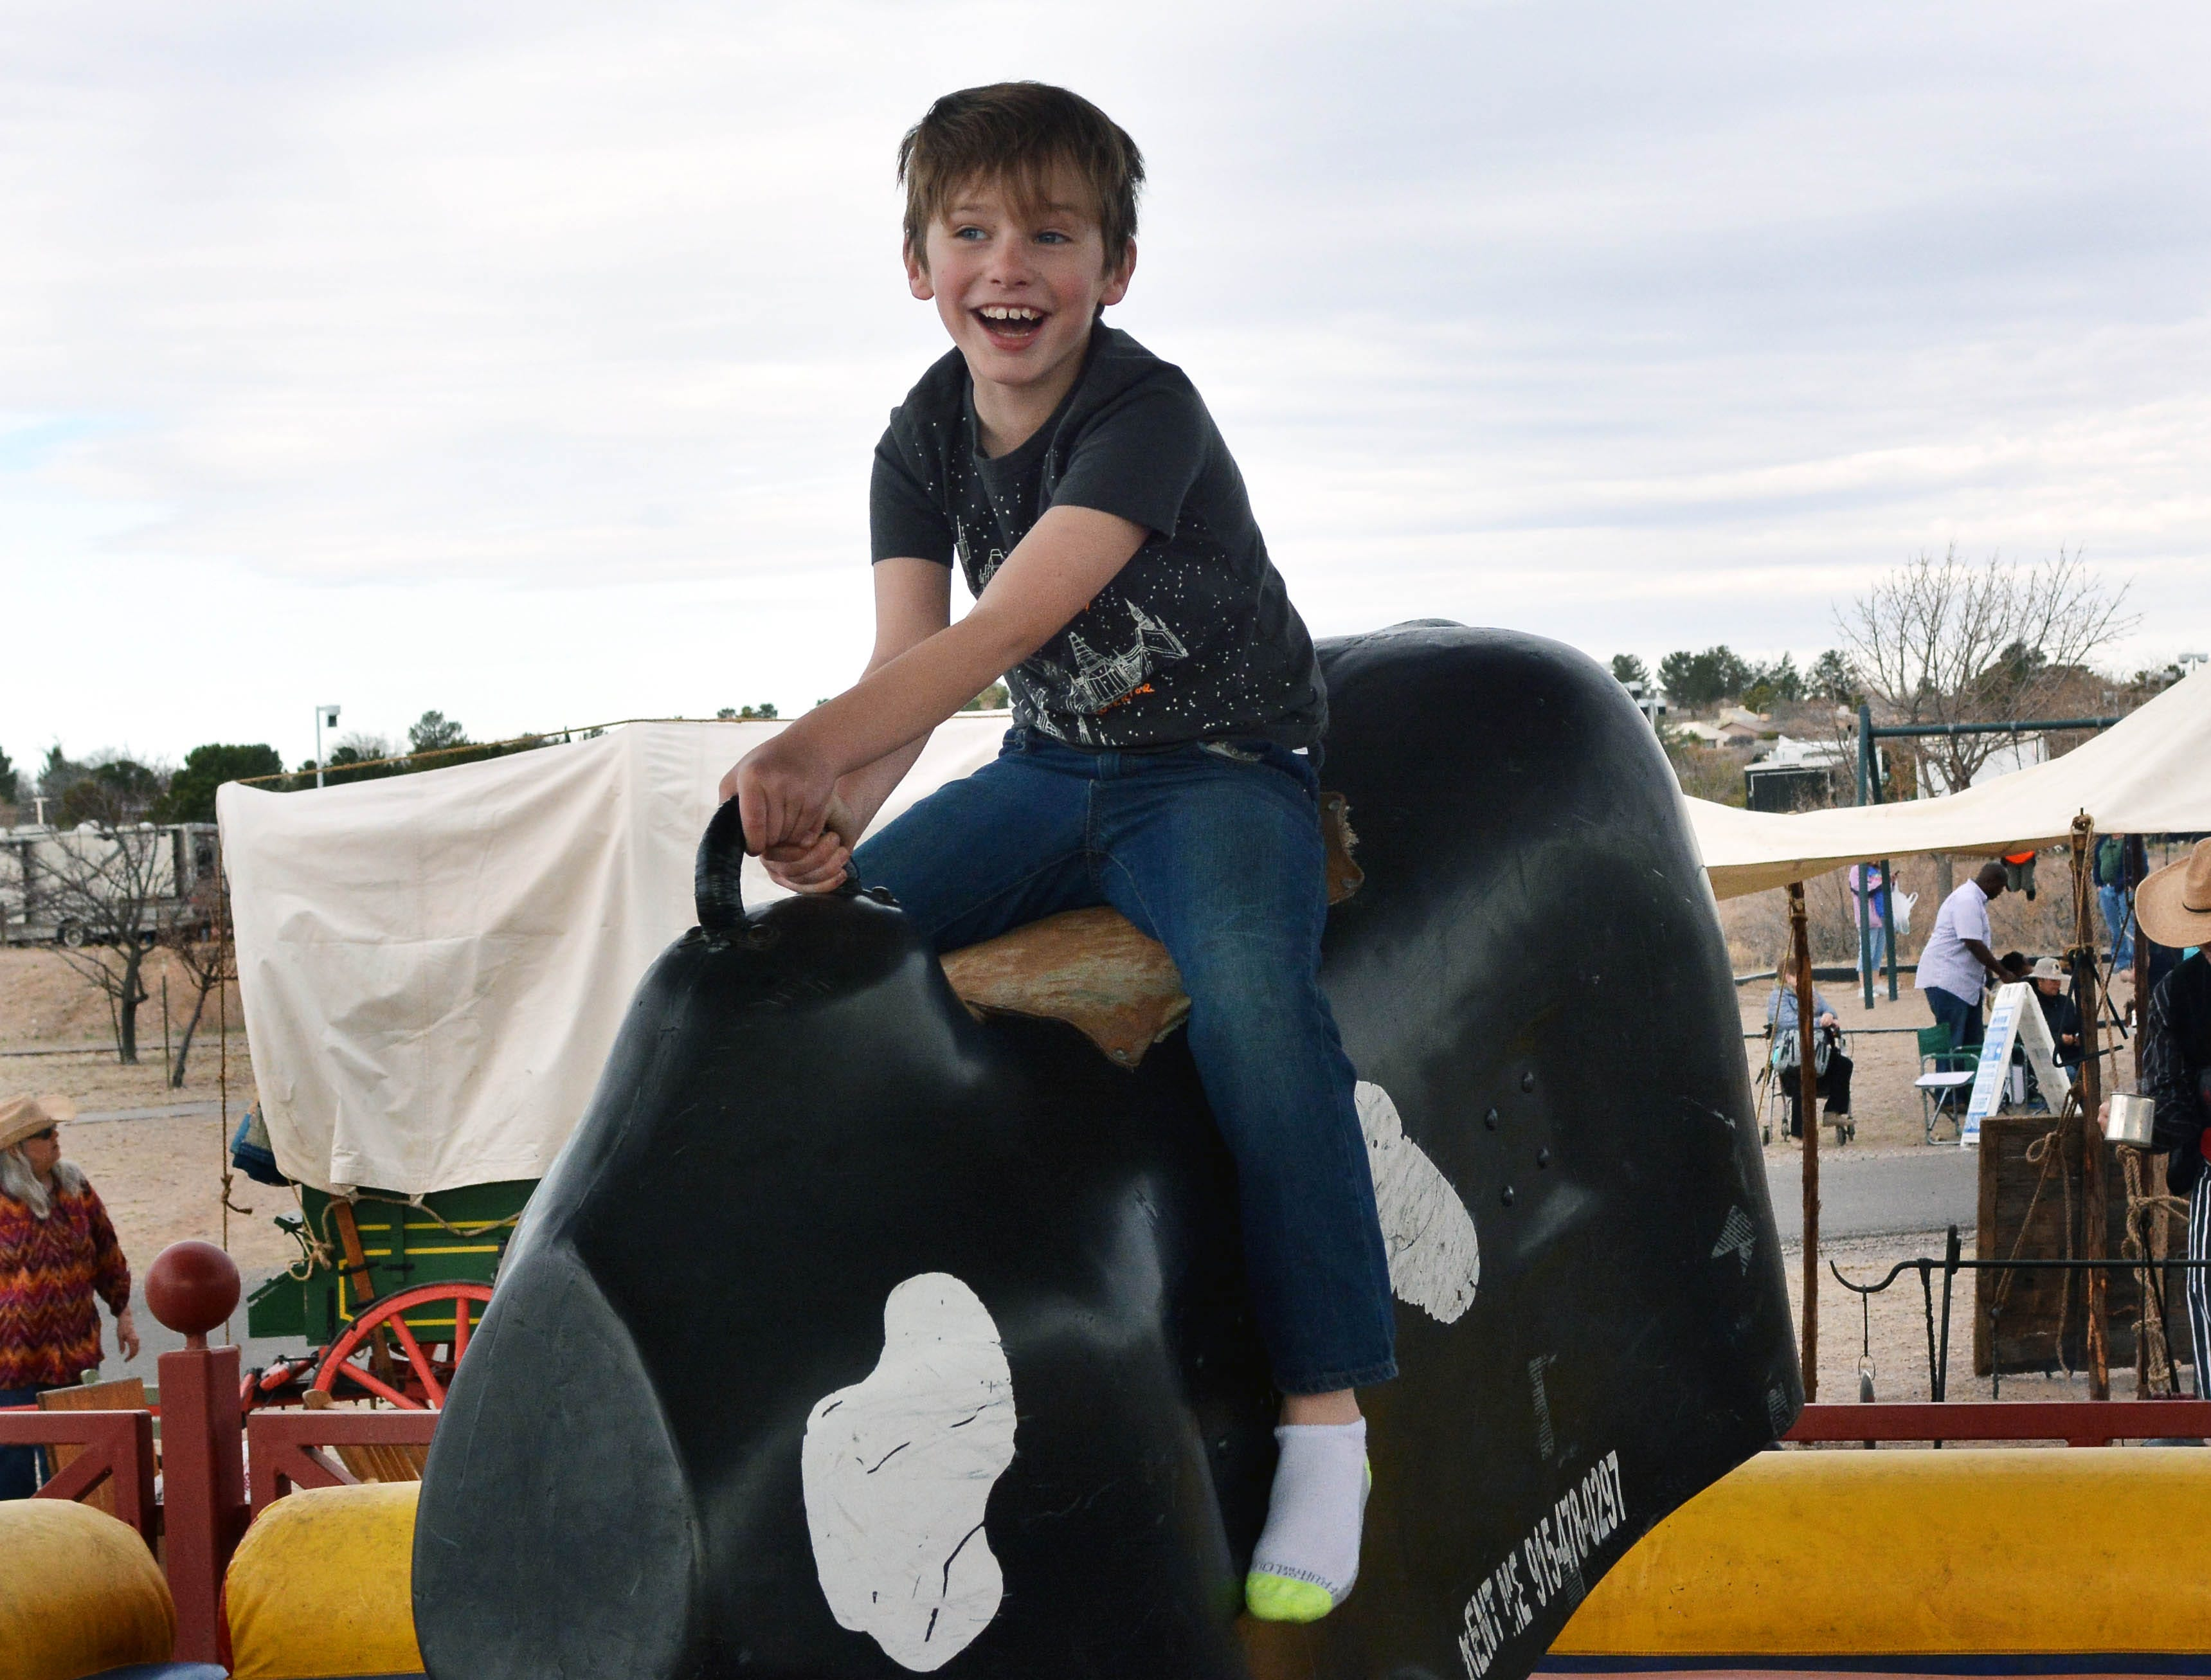 Dawson Mastriani, 8, from El Paso,enjoys his first mechanical bull ride during the 20th annual Cowboy Days held Saturday, March 2, 2019, at the New Mexico Farm and Ranch Heritage Museum.